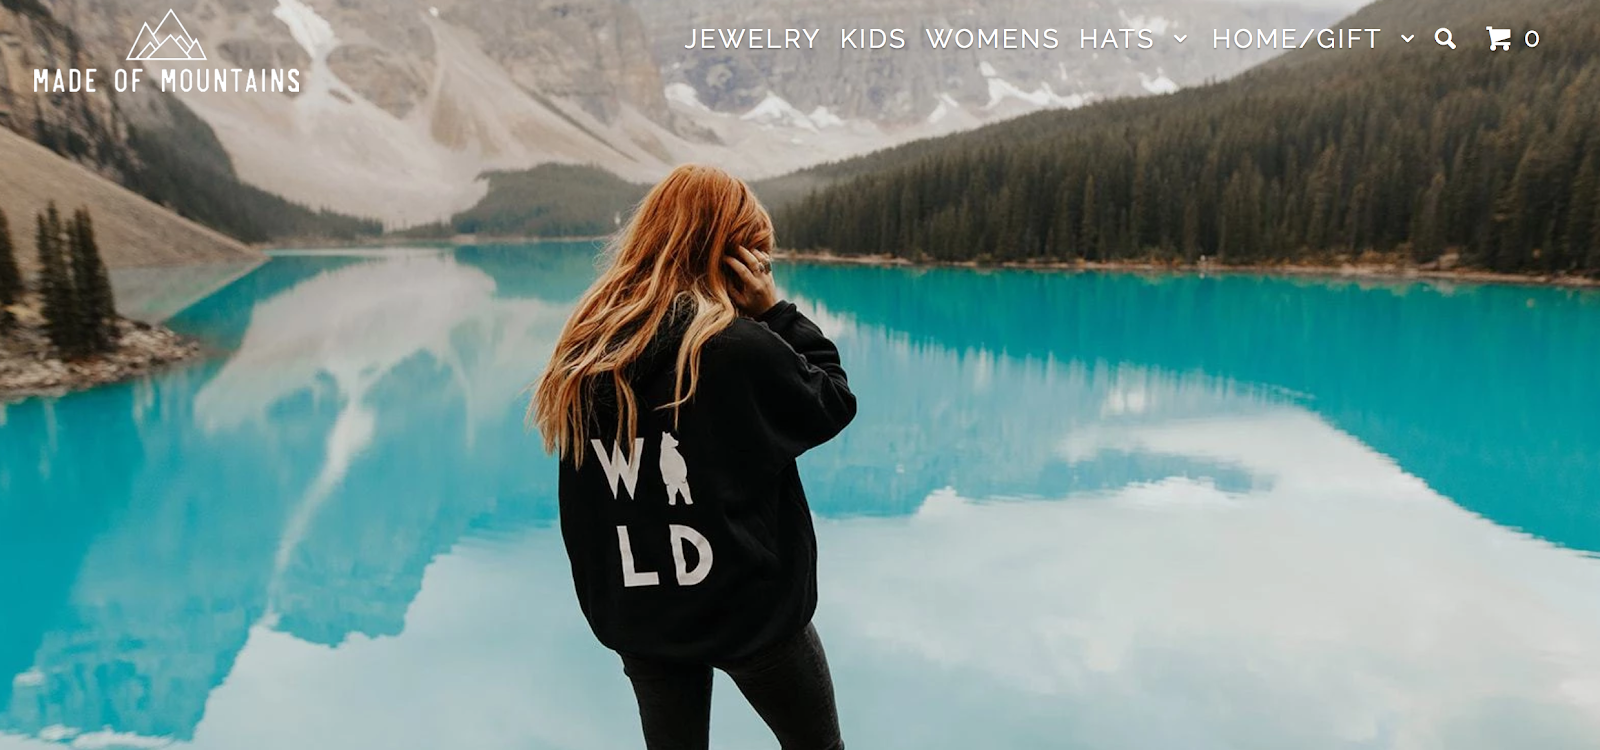 Made of Mountains - Photography Influencers Collab Opp